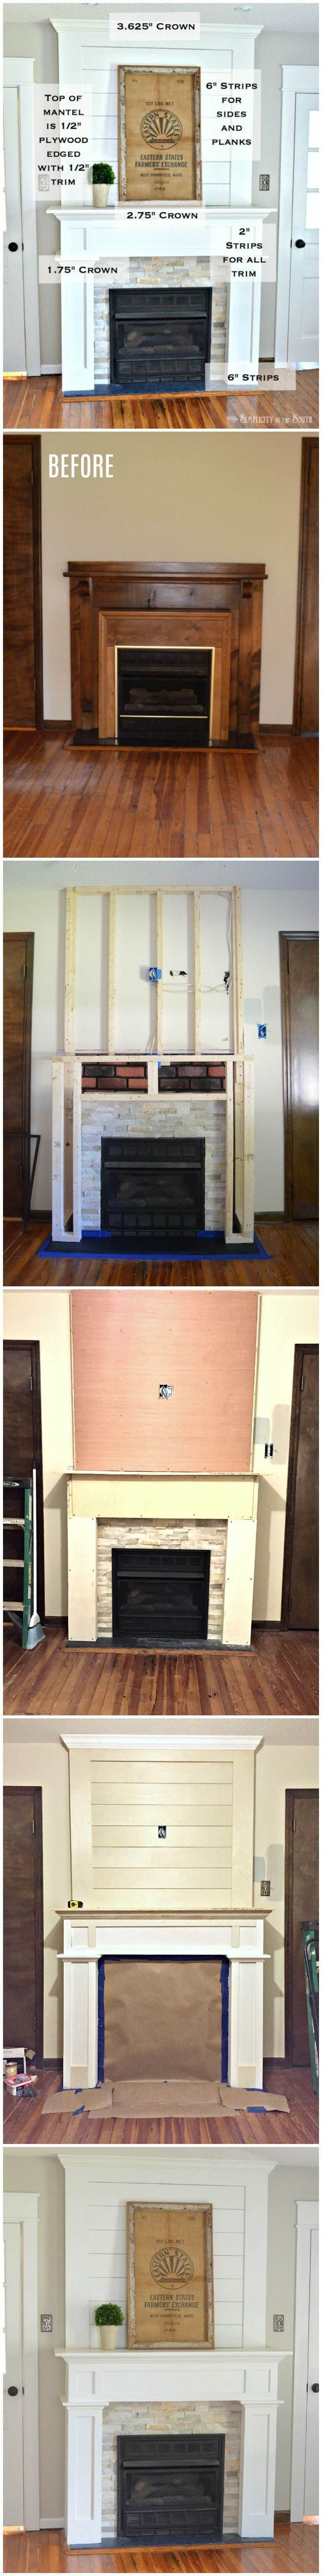 10 best DIY Home Projects images on Pinterest